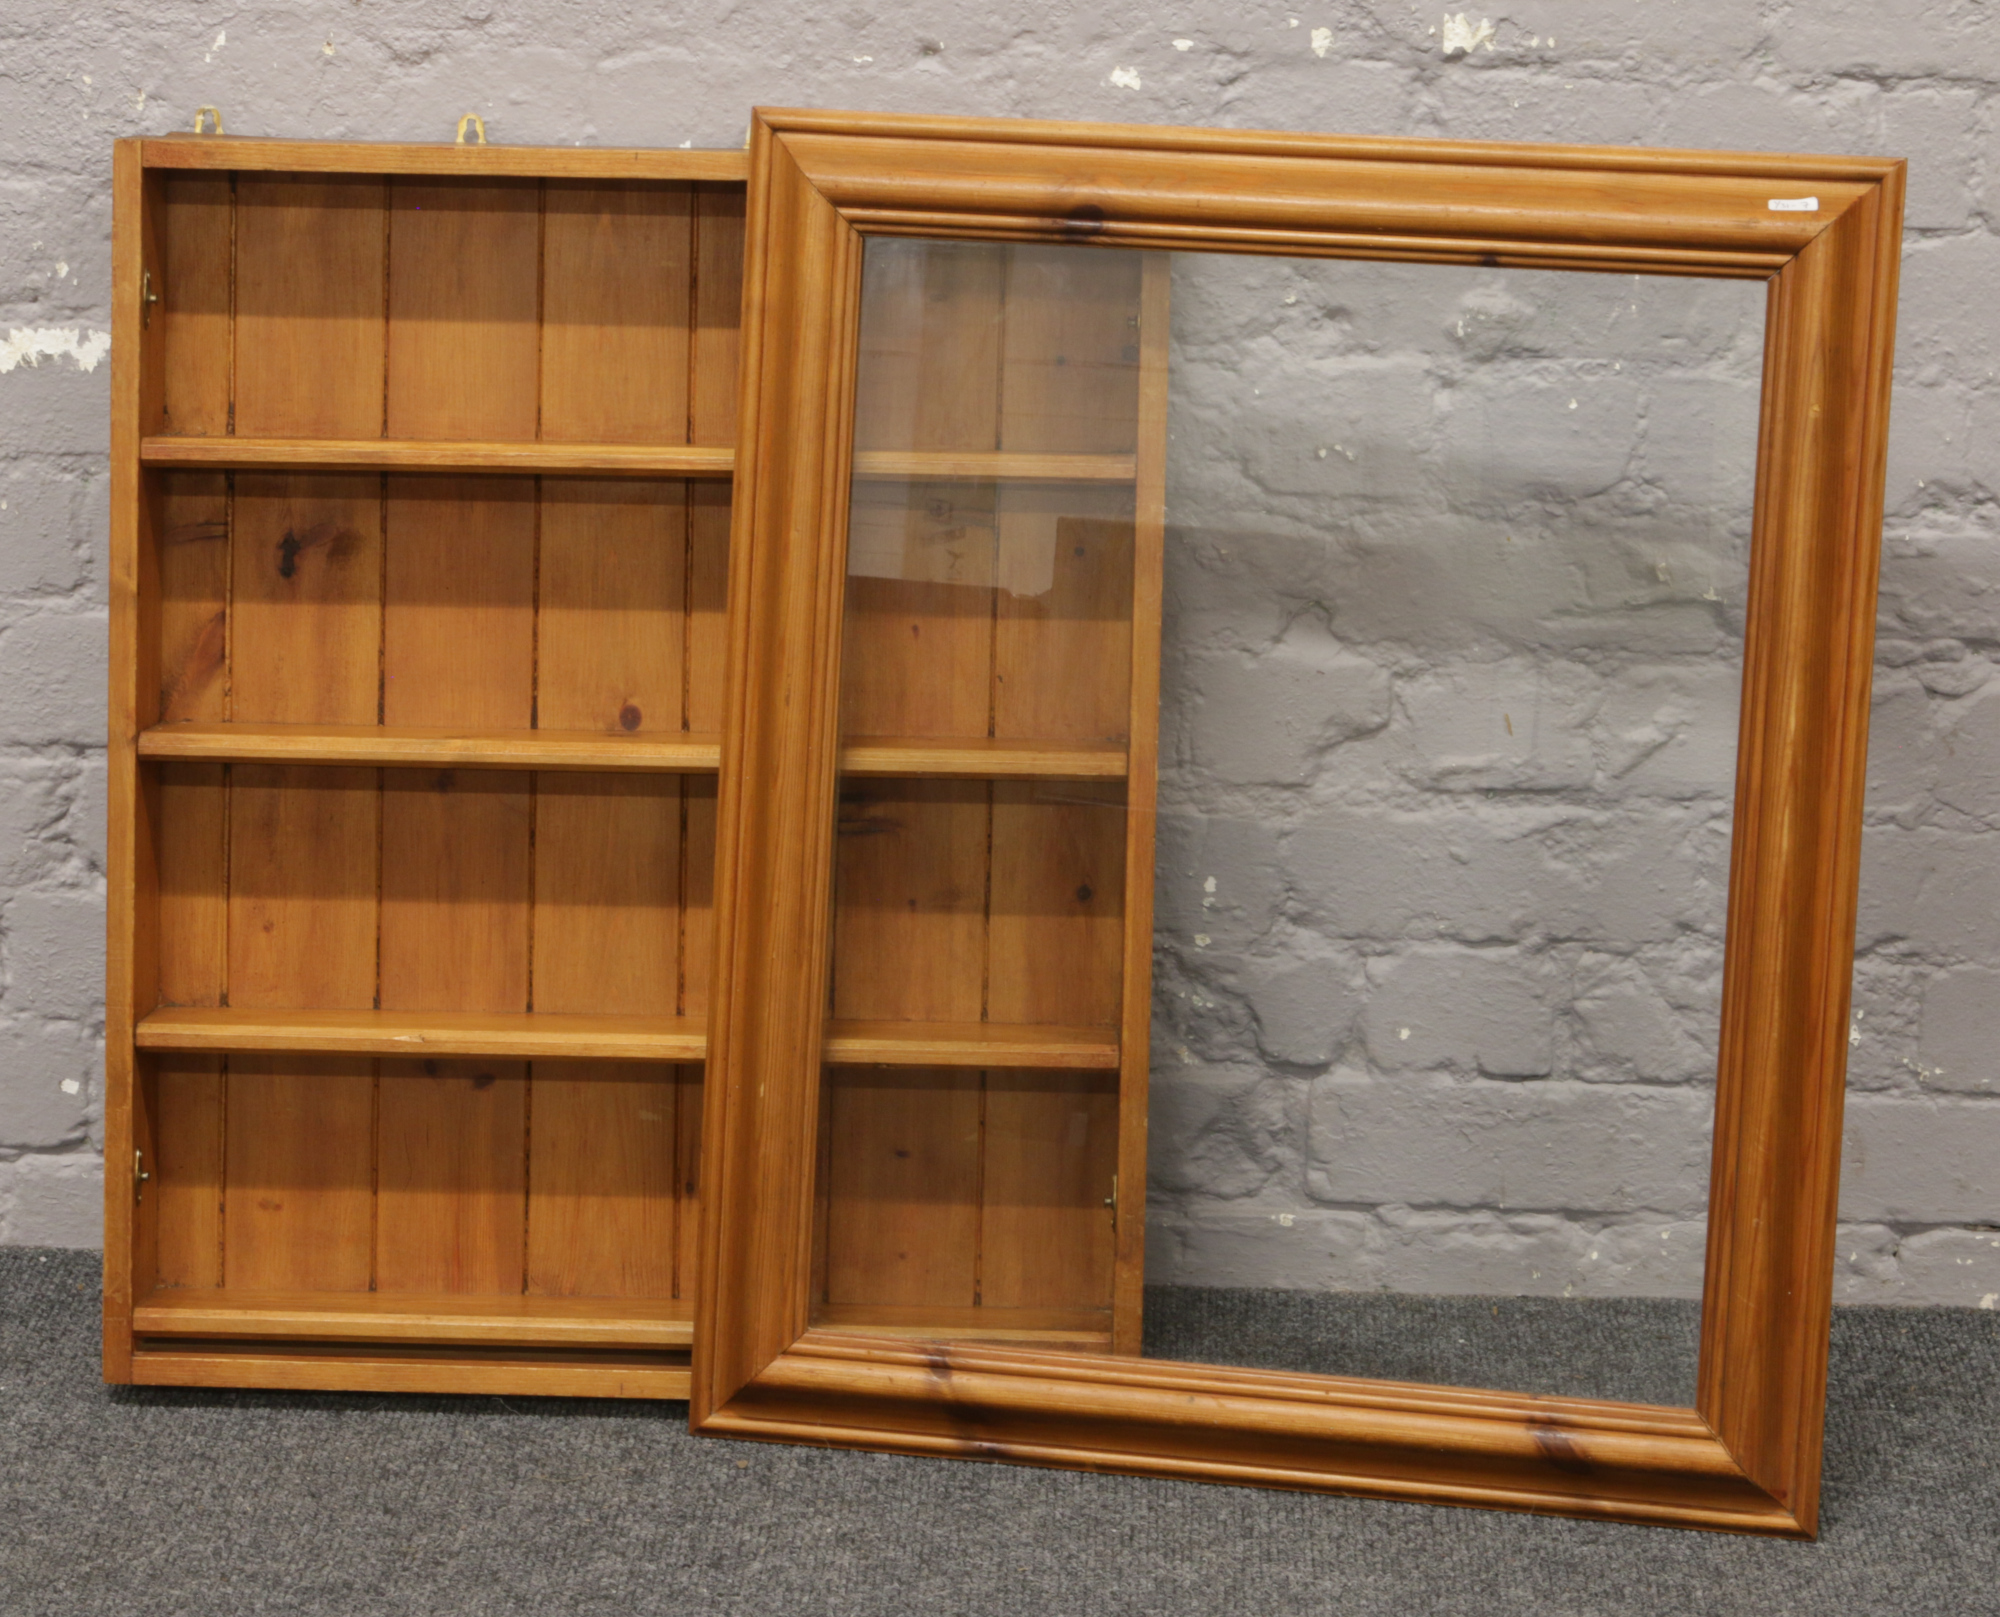 Lot 302 - A pine wall hanging display case.